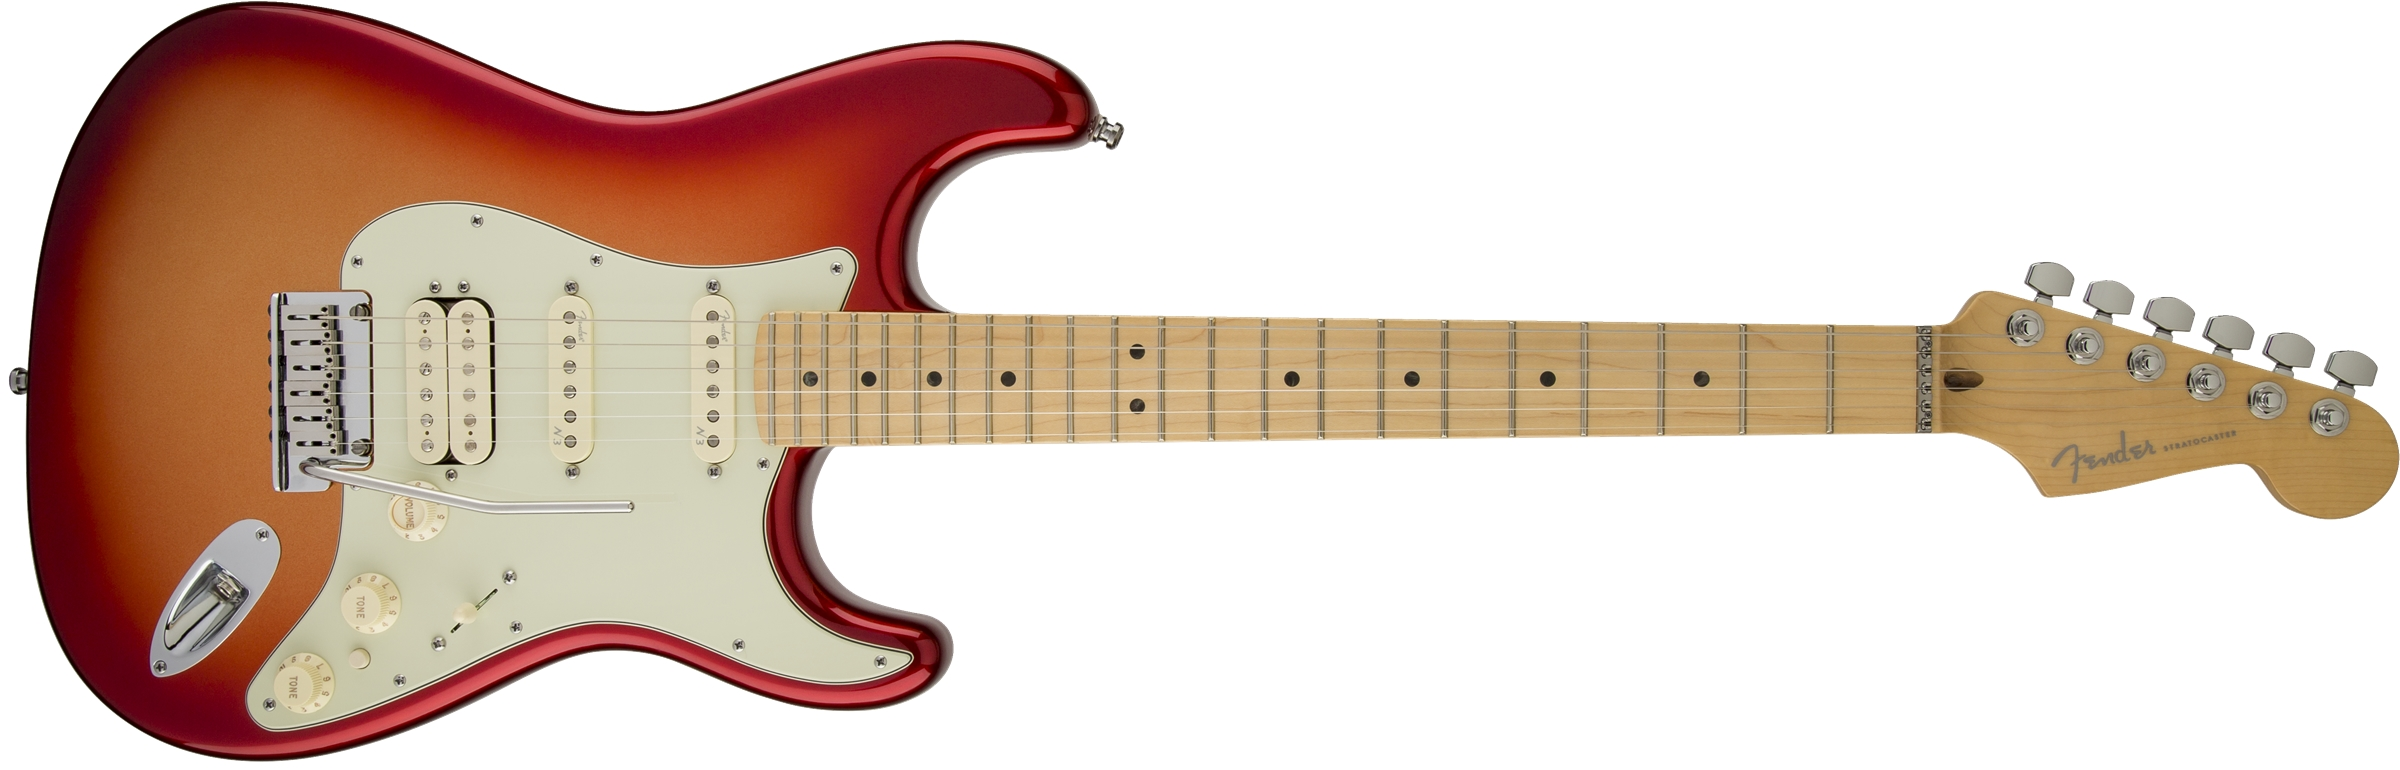 Fender Strat HSS American Deluxe Control Description and Fender RED ACCESSORY